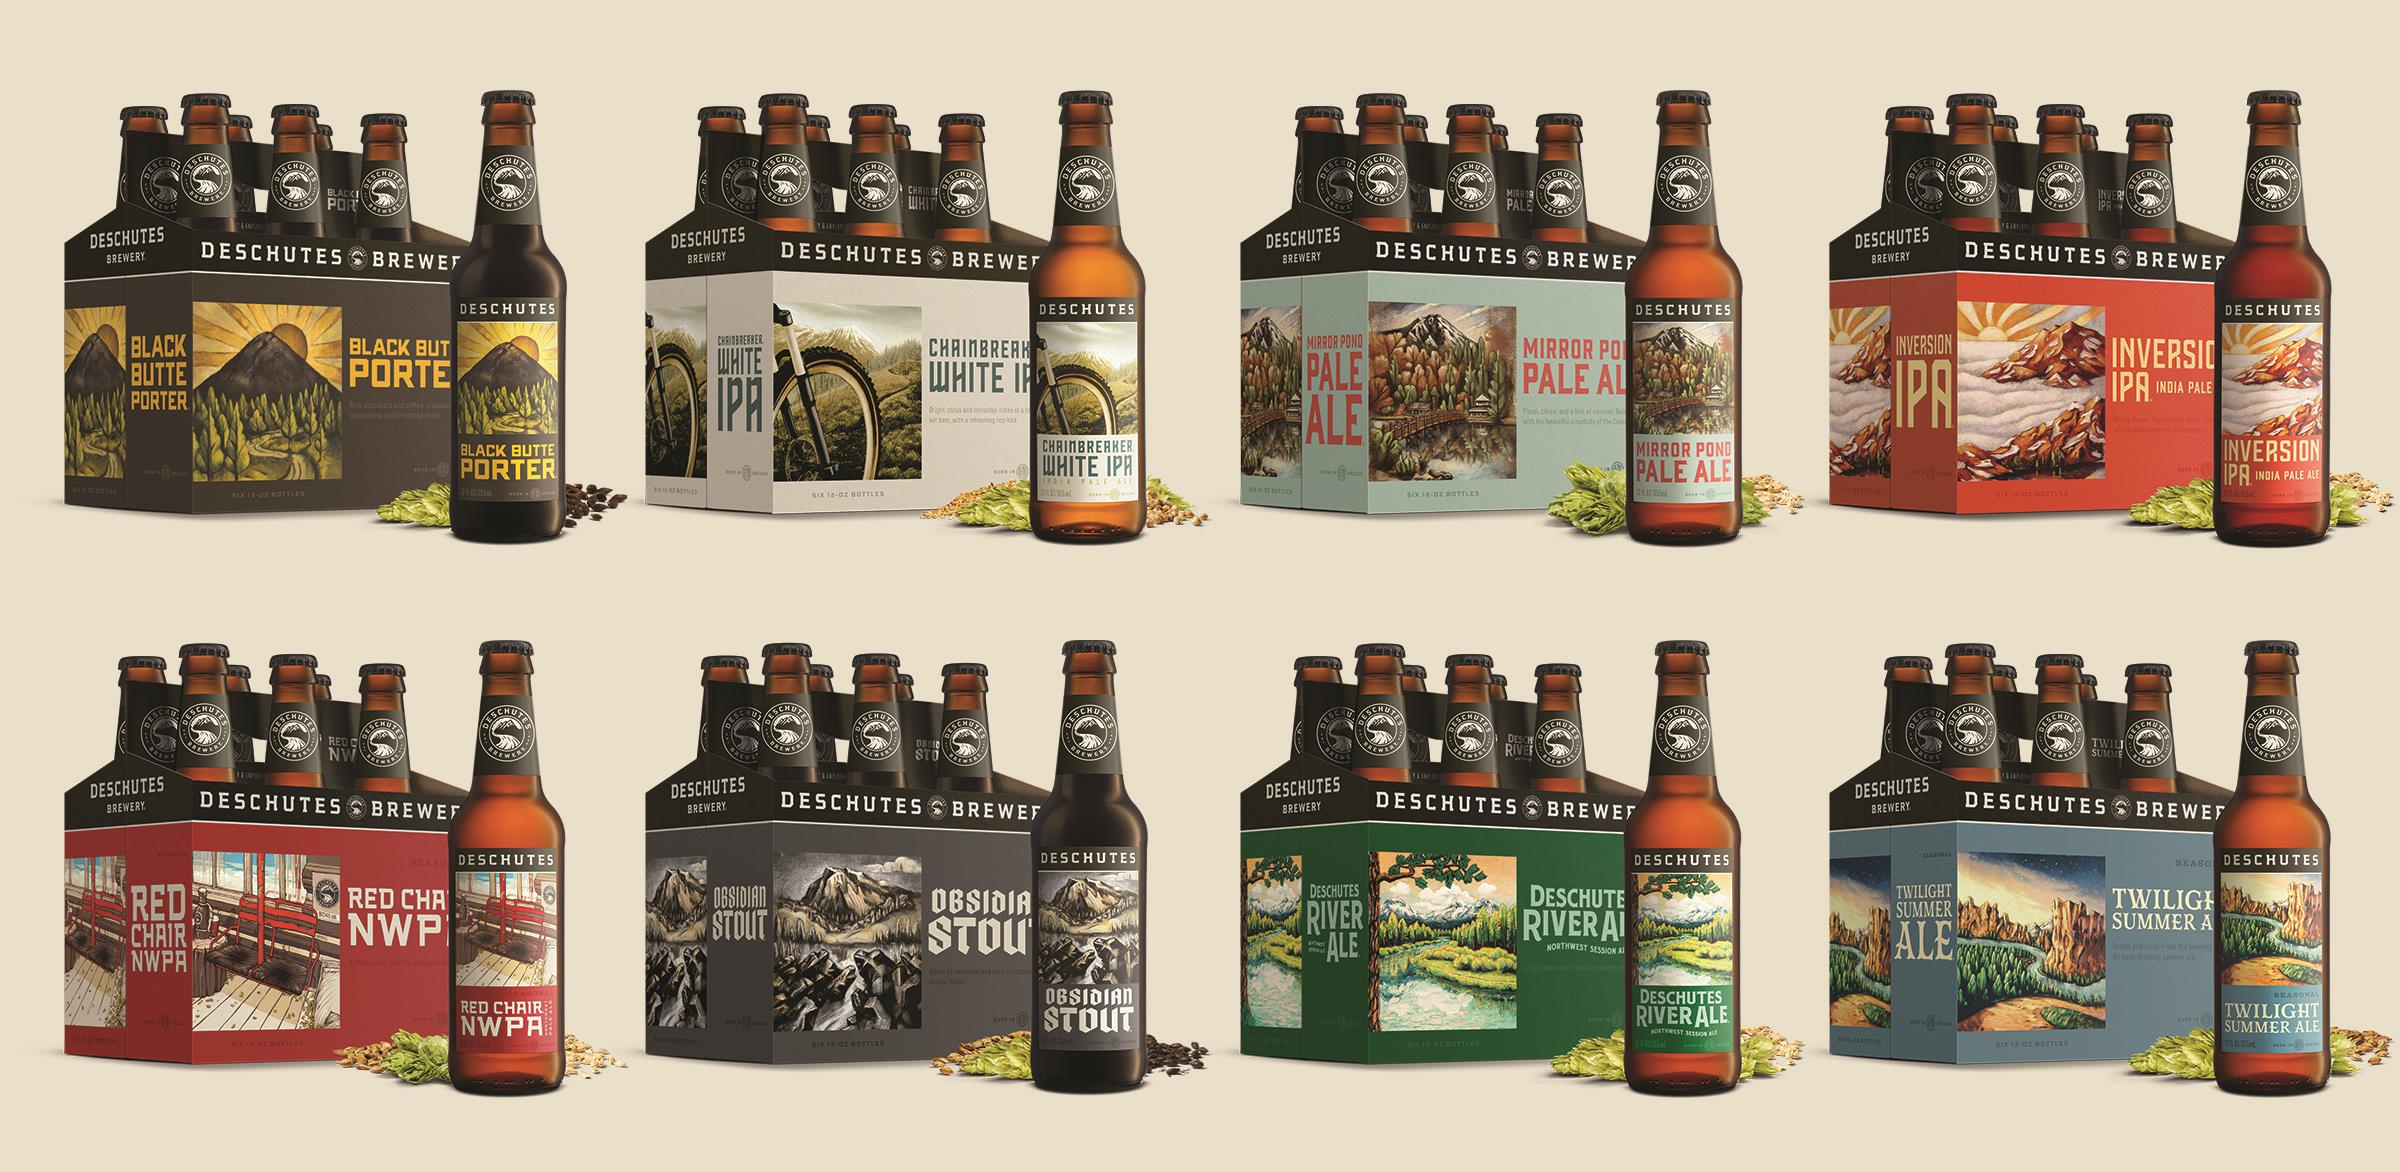 Deschutes Brewery Re-brand